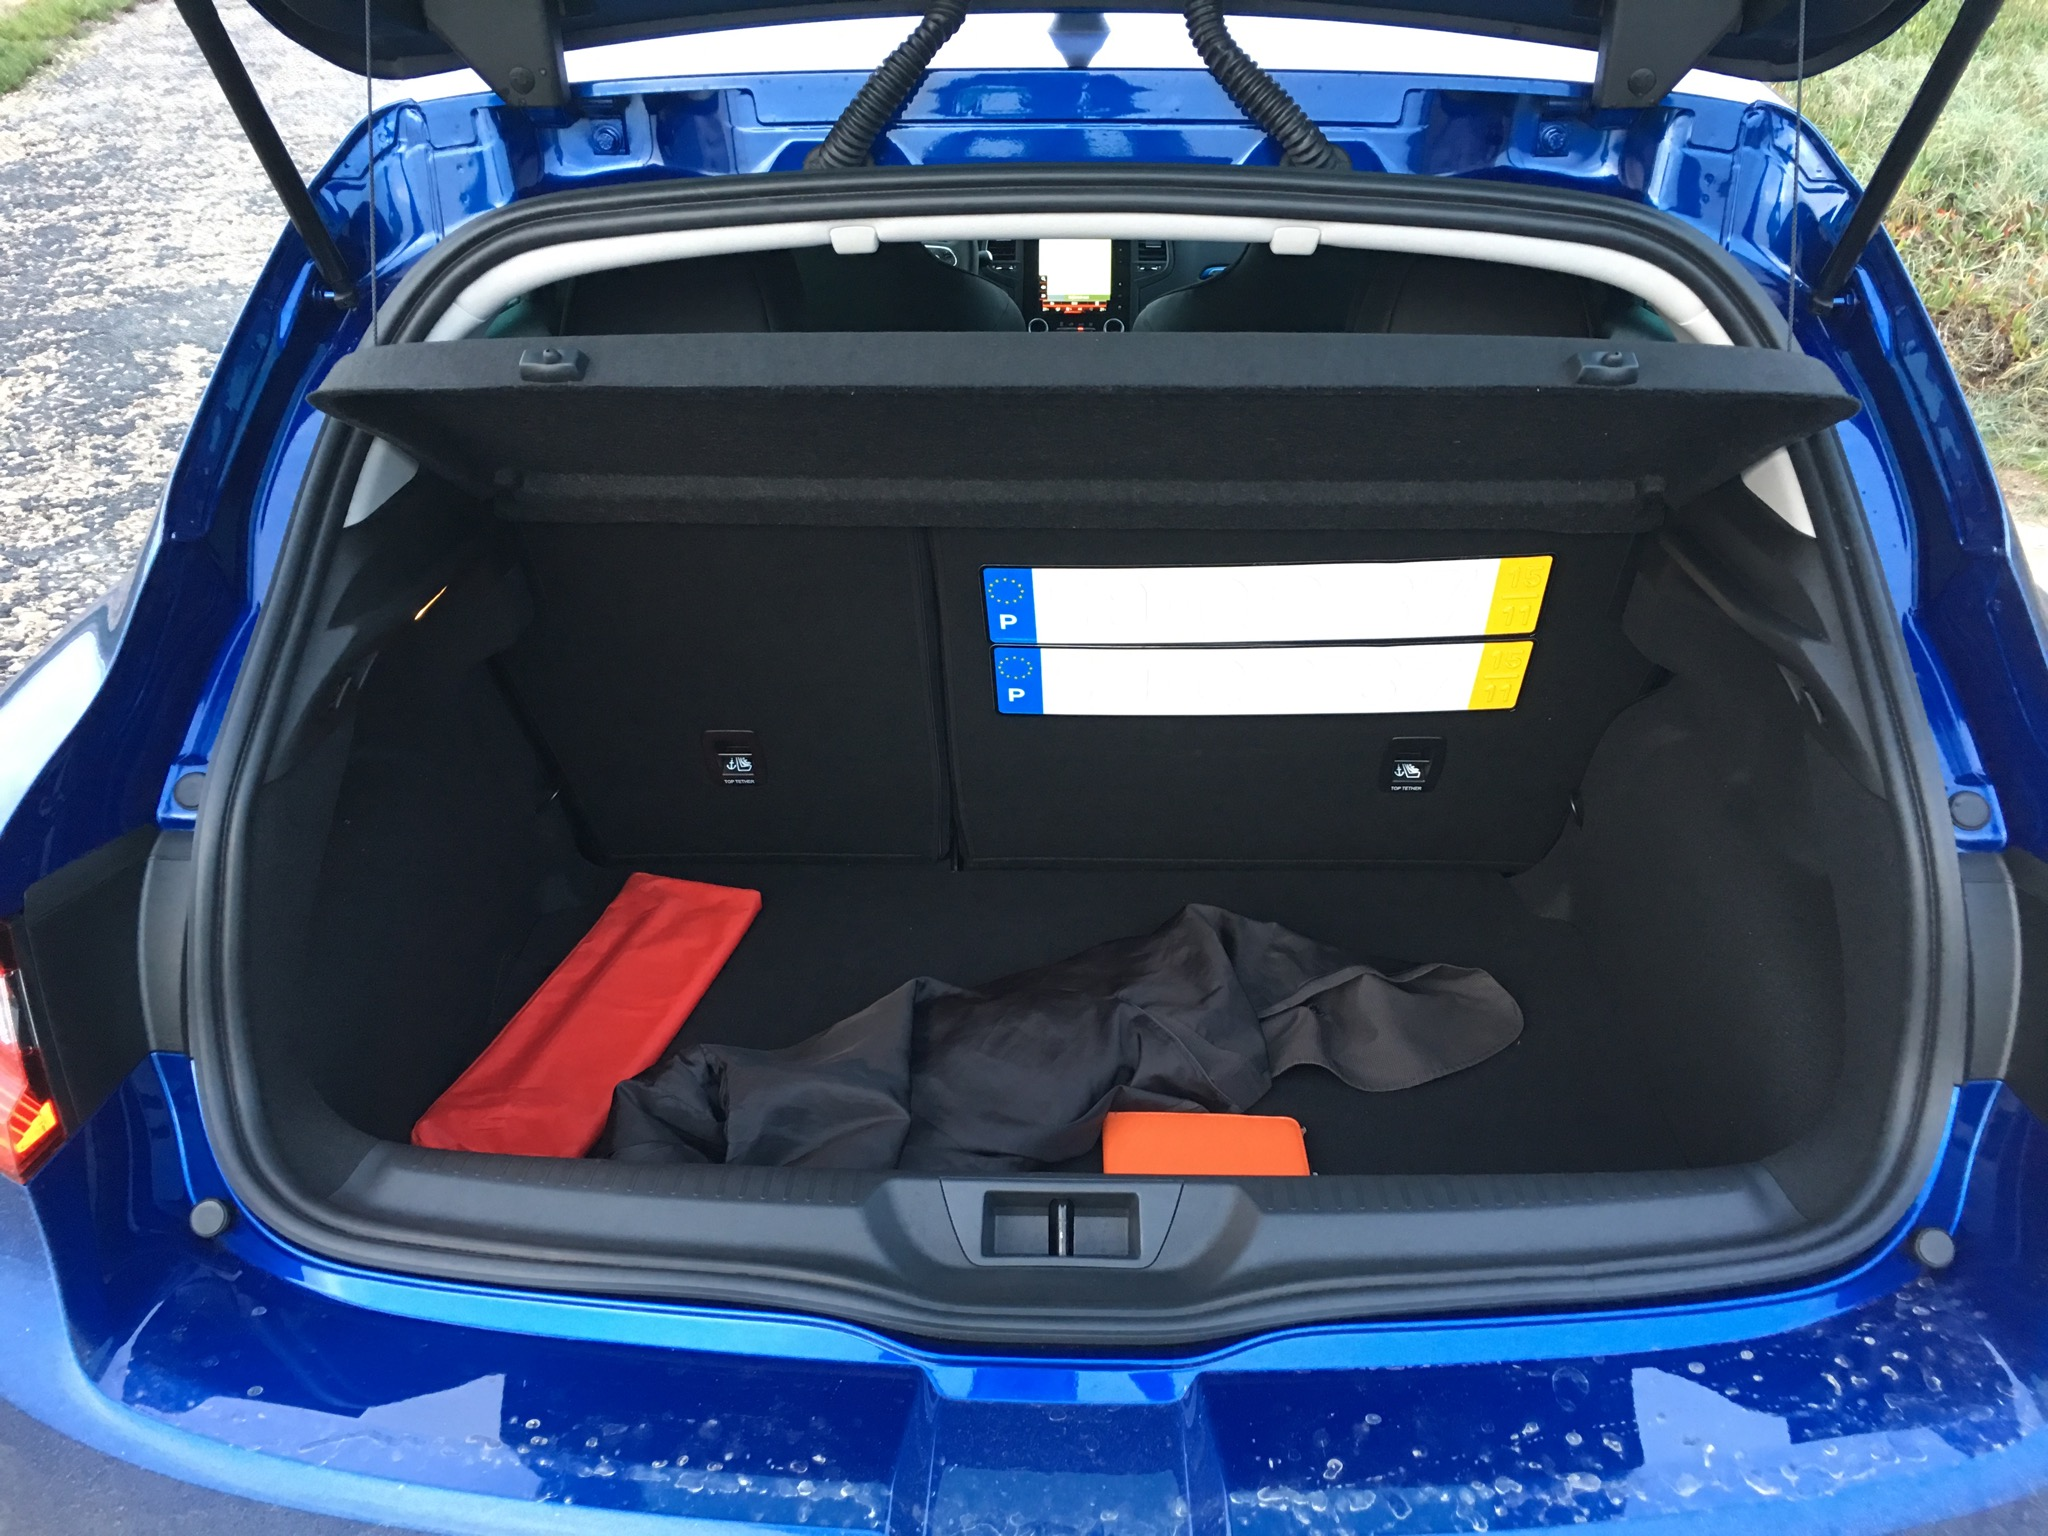 2016 Renault Megane Gt Trunk Space (View 2 of 27)